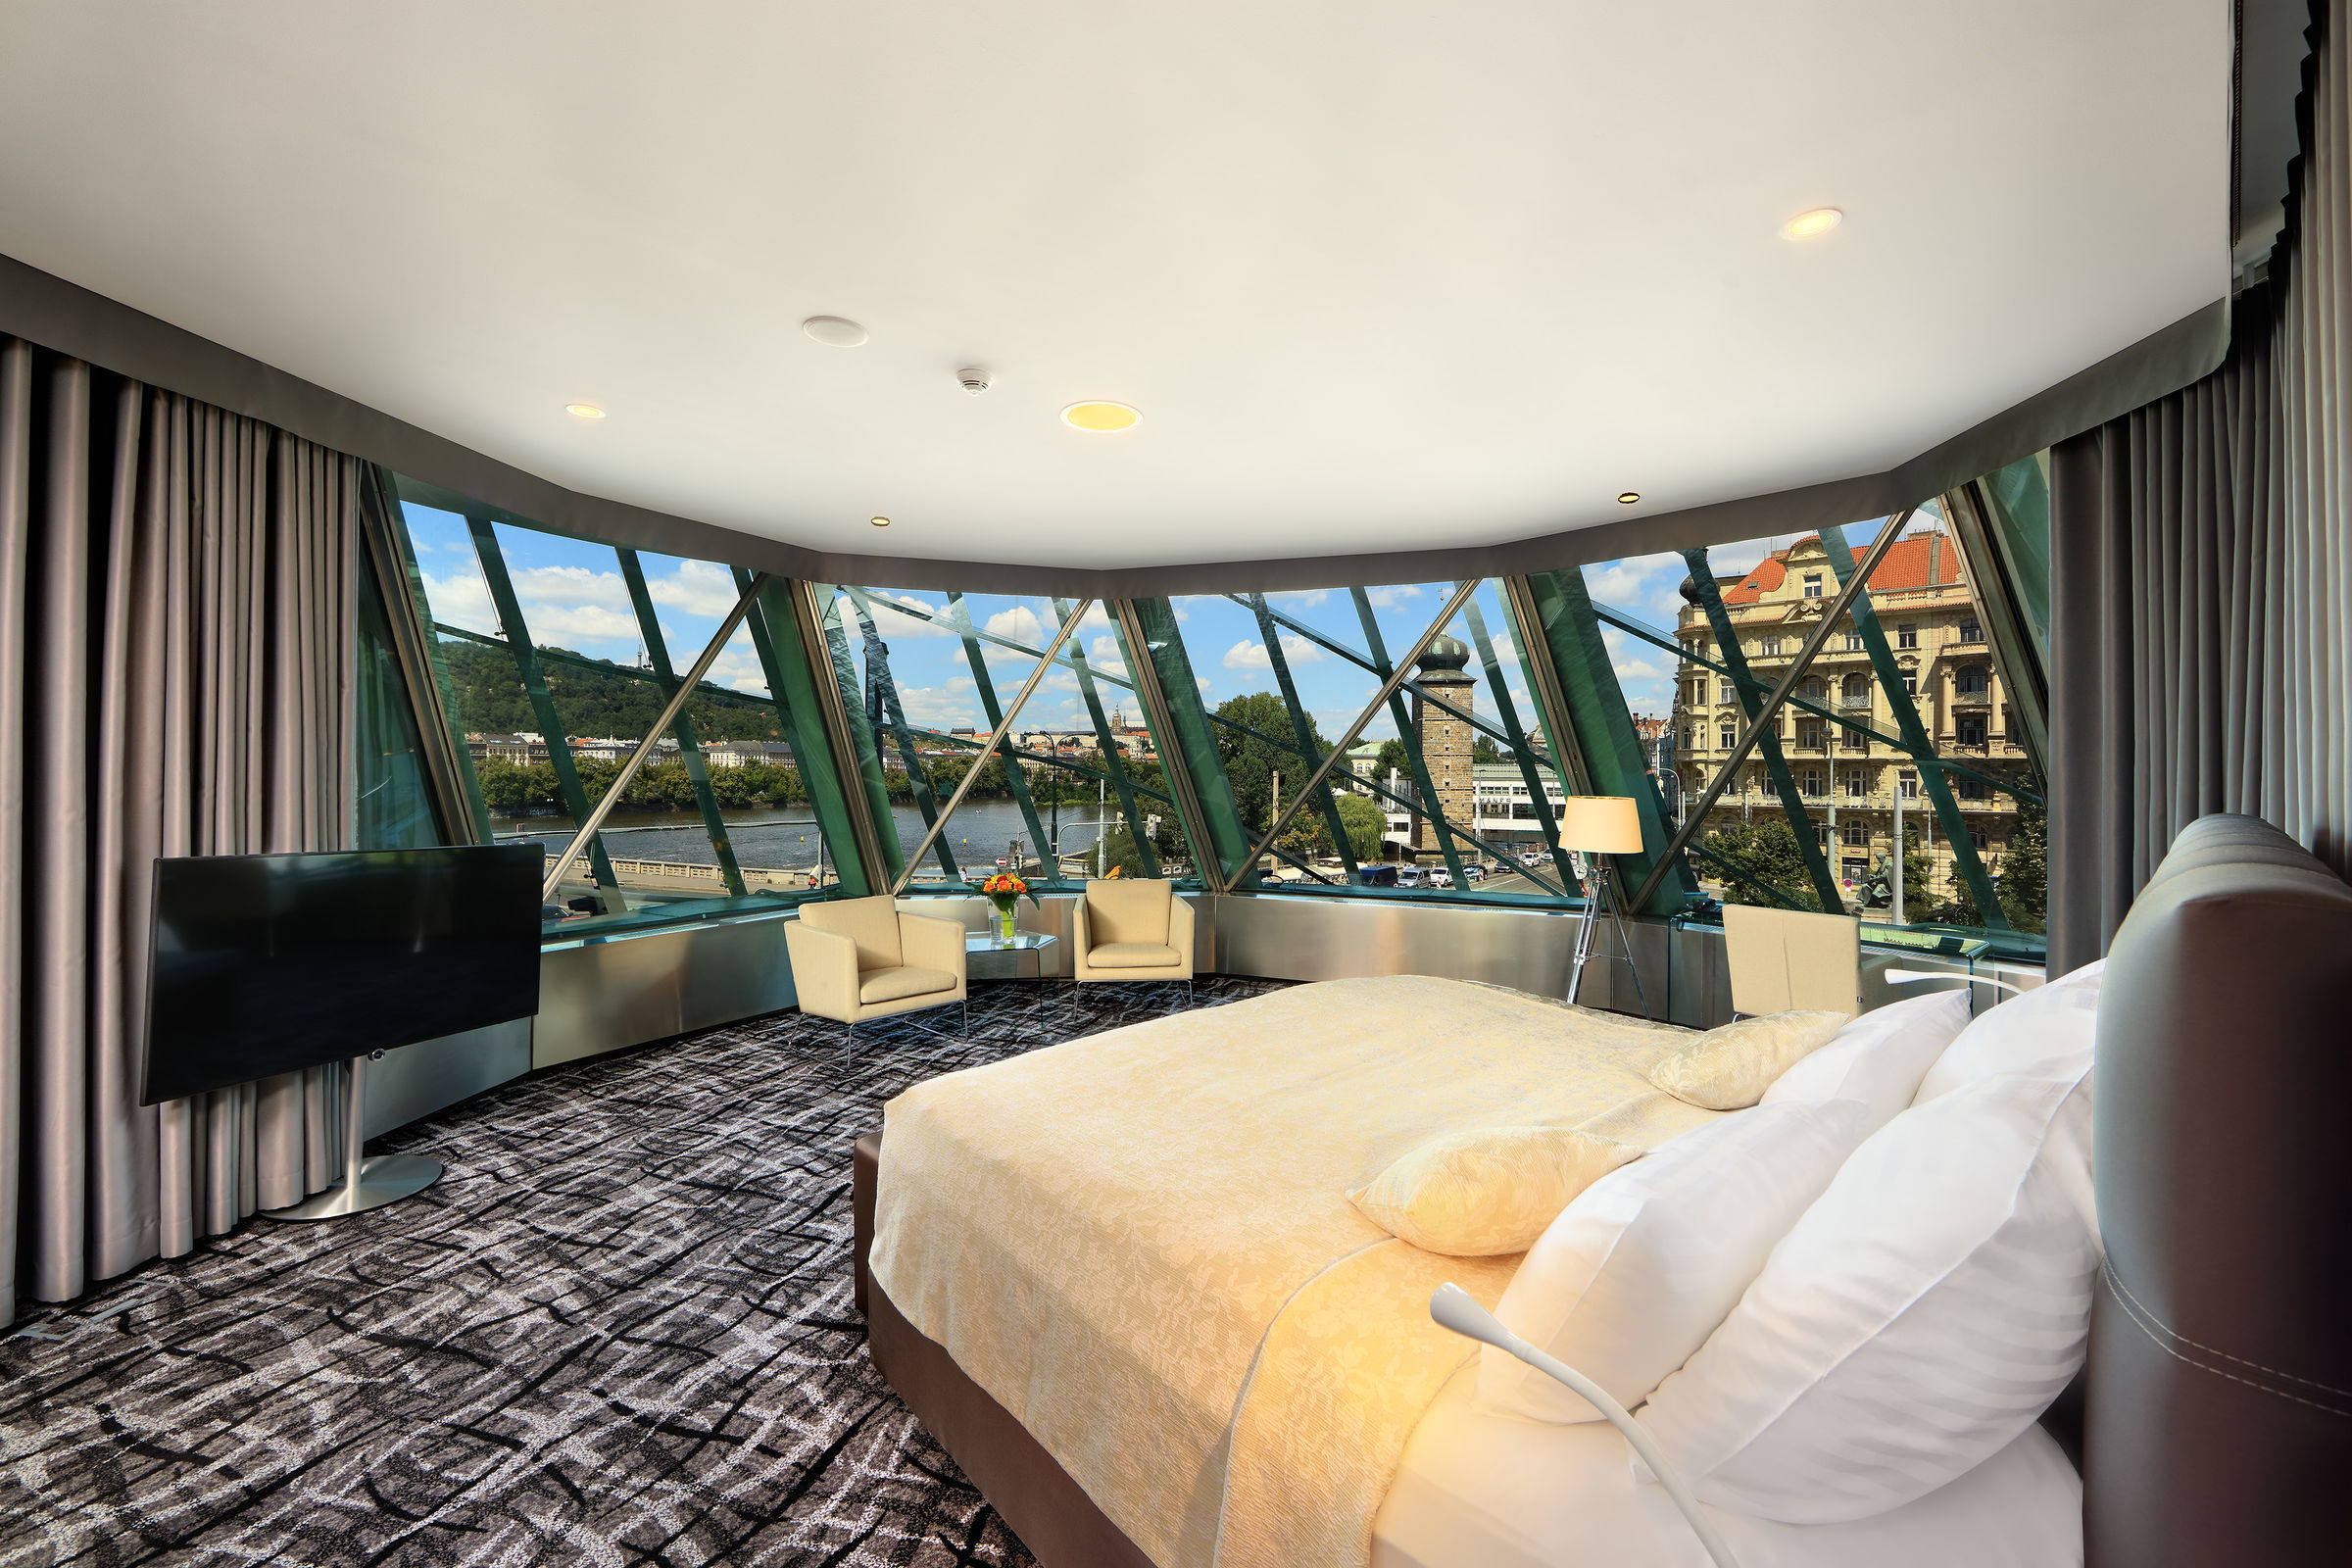 Most rooms have a unique view of Prague Castle, the Vltava River and the Old Town.